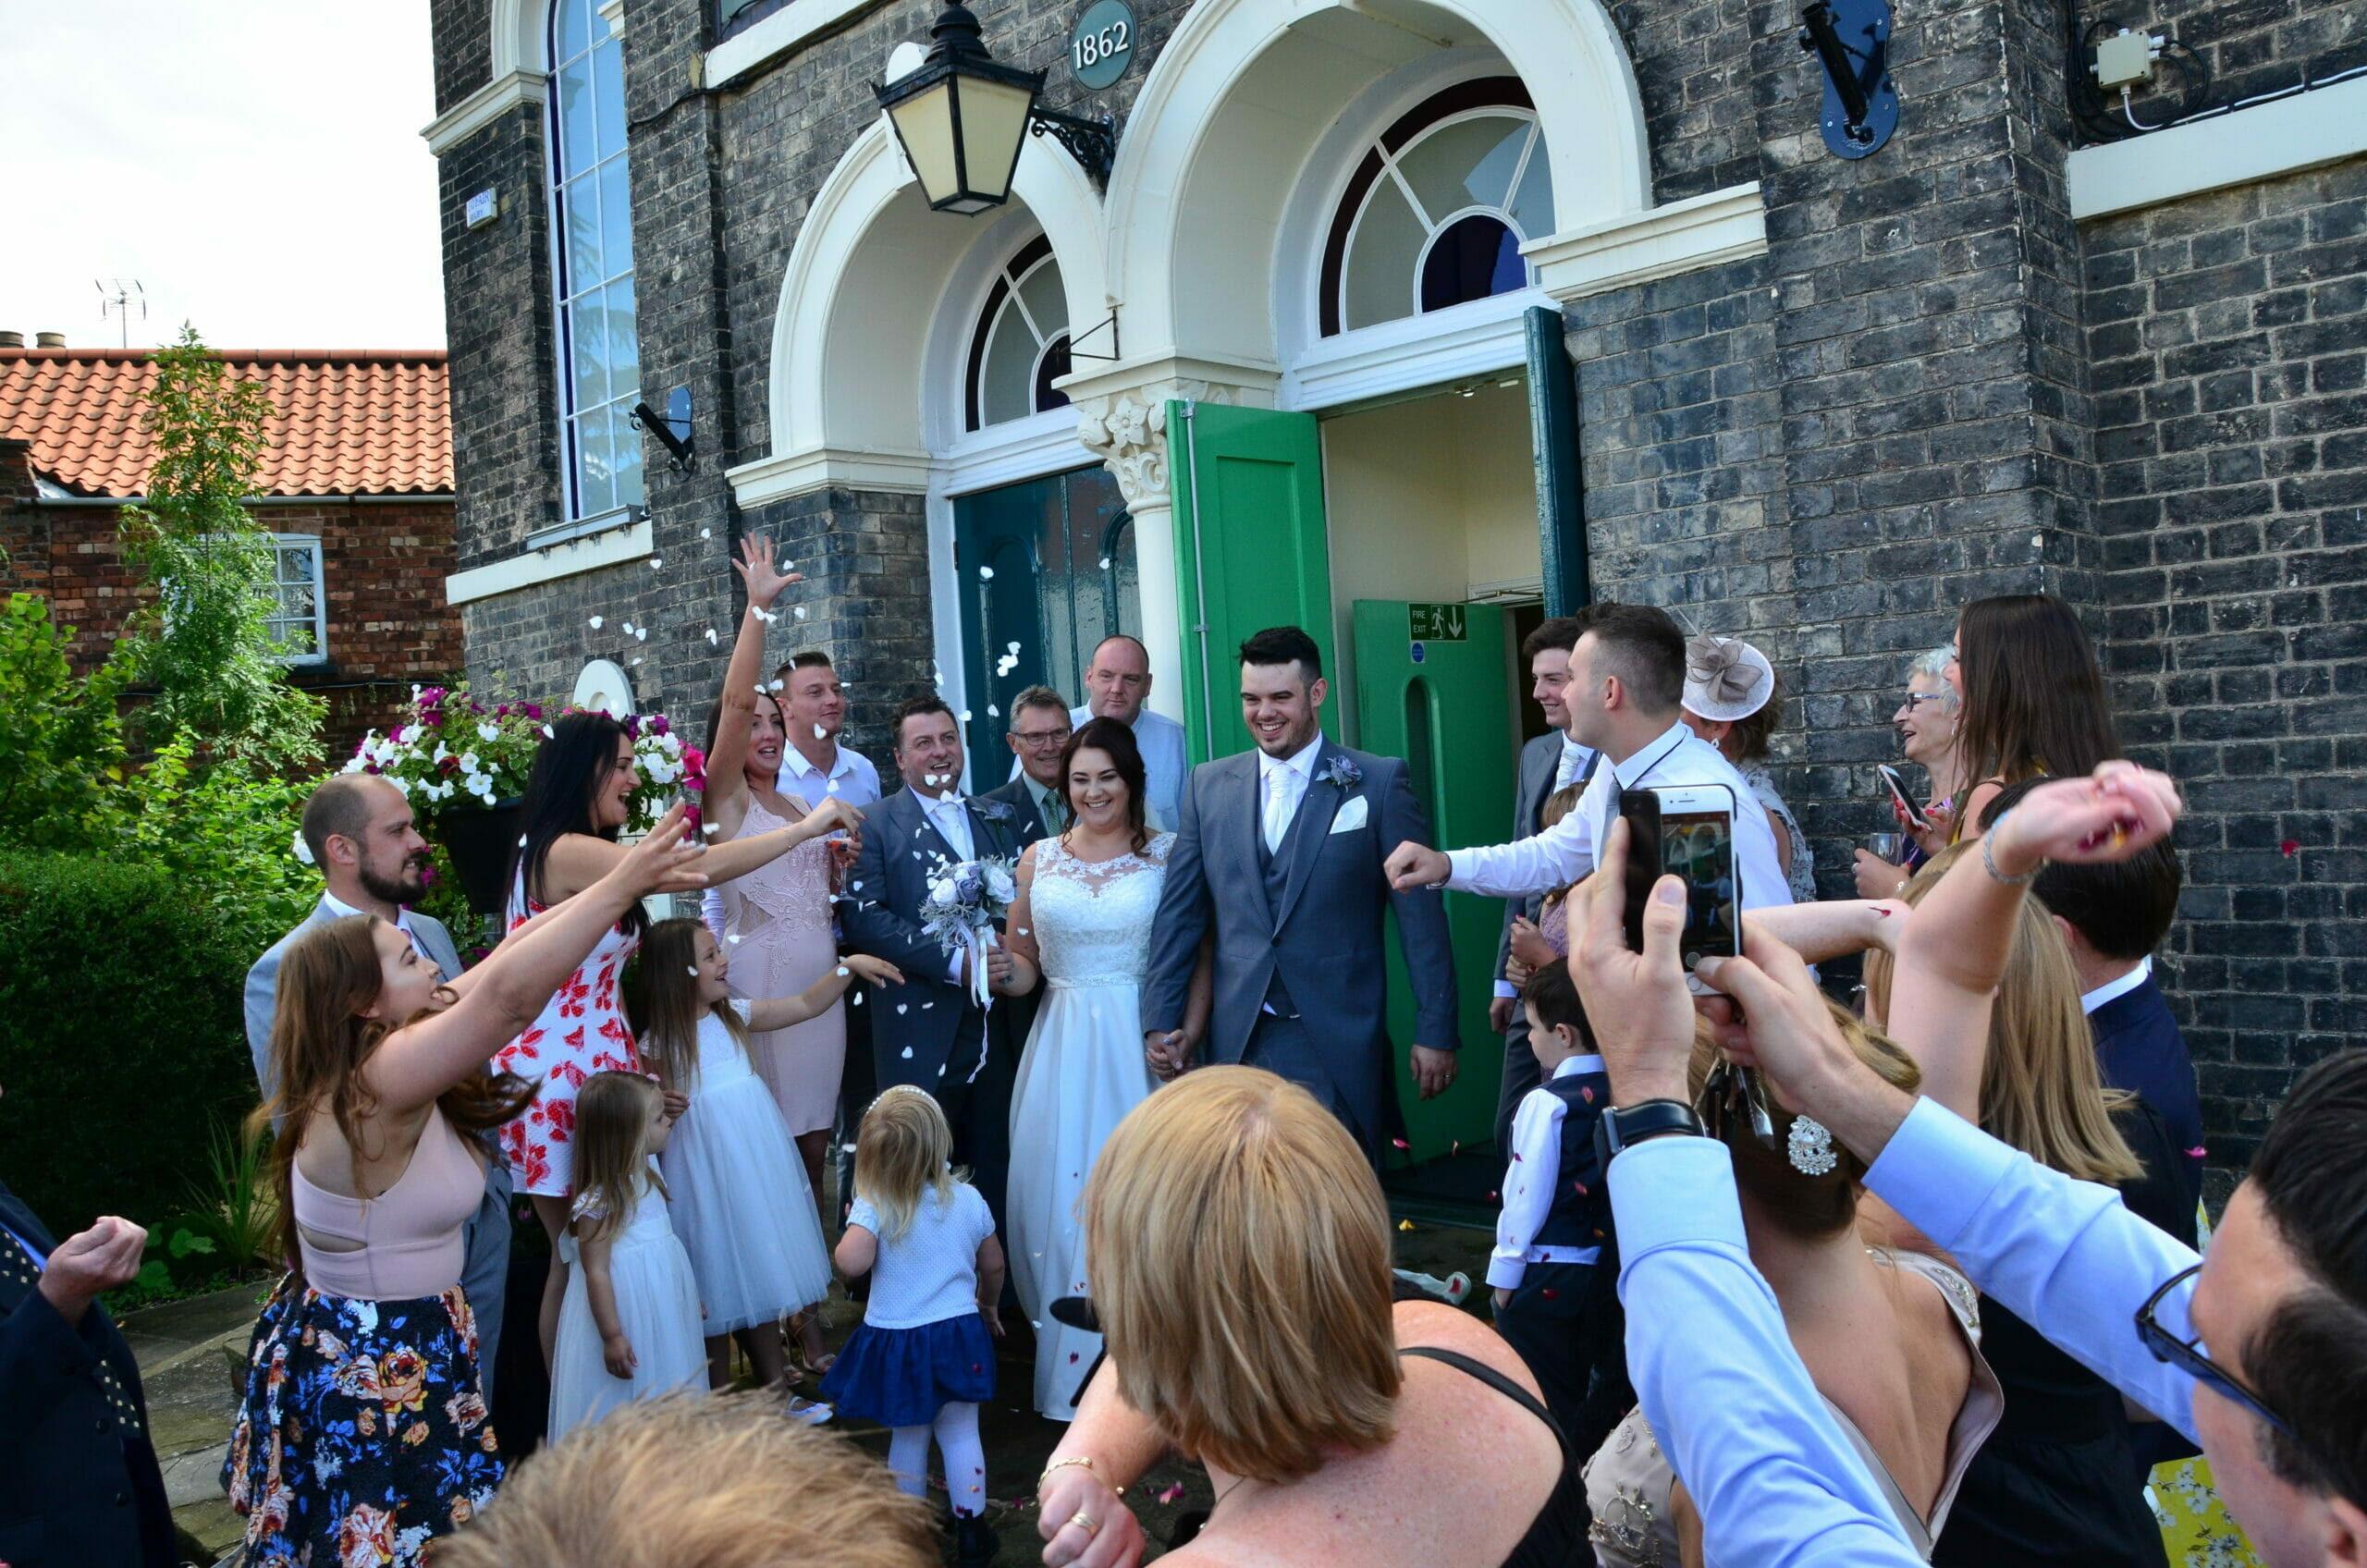 Photo shows a wedding couple on the front steps of the Town Hall